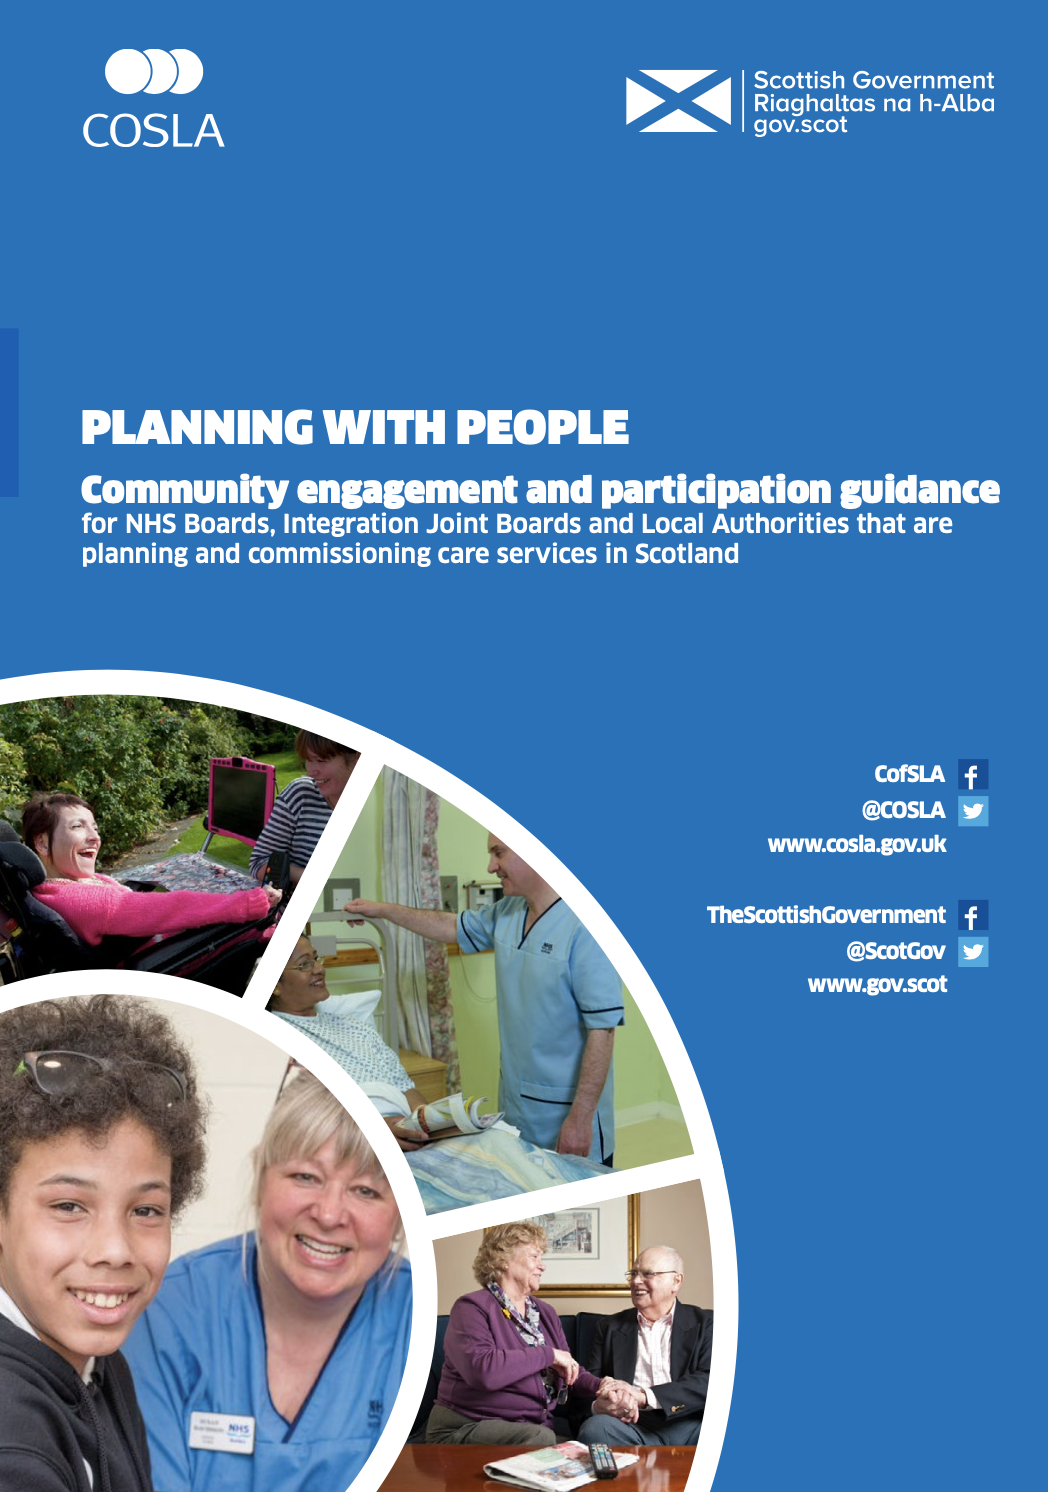 Planning With People (PDF Link)